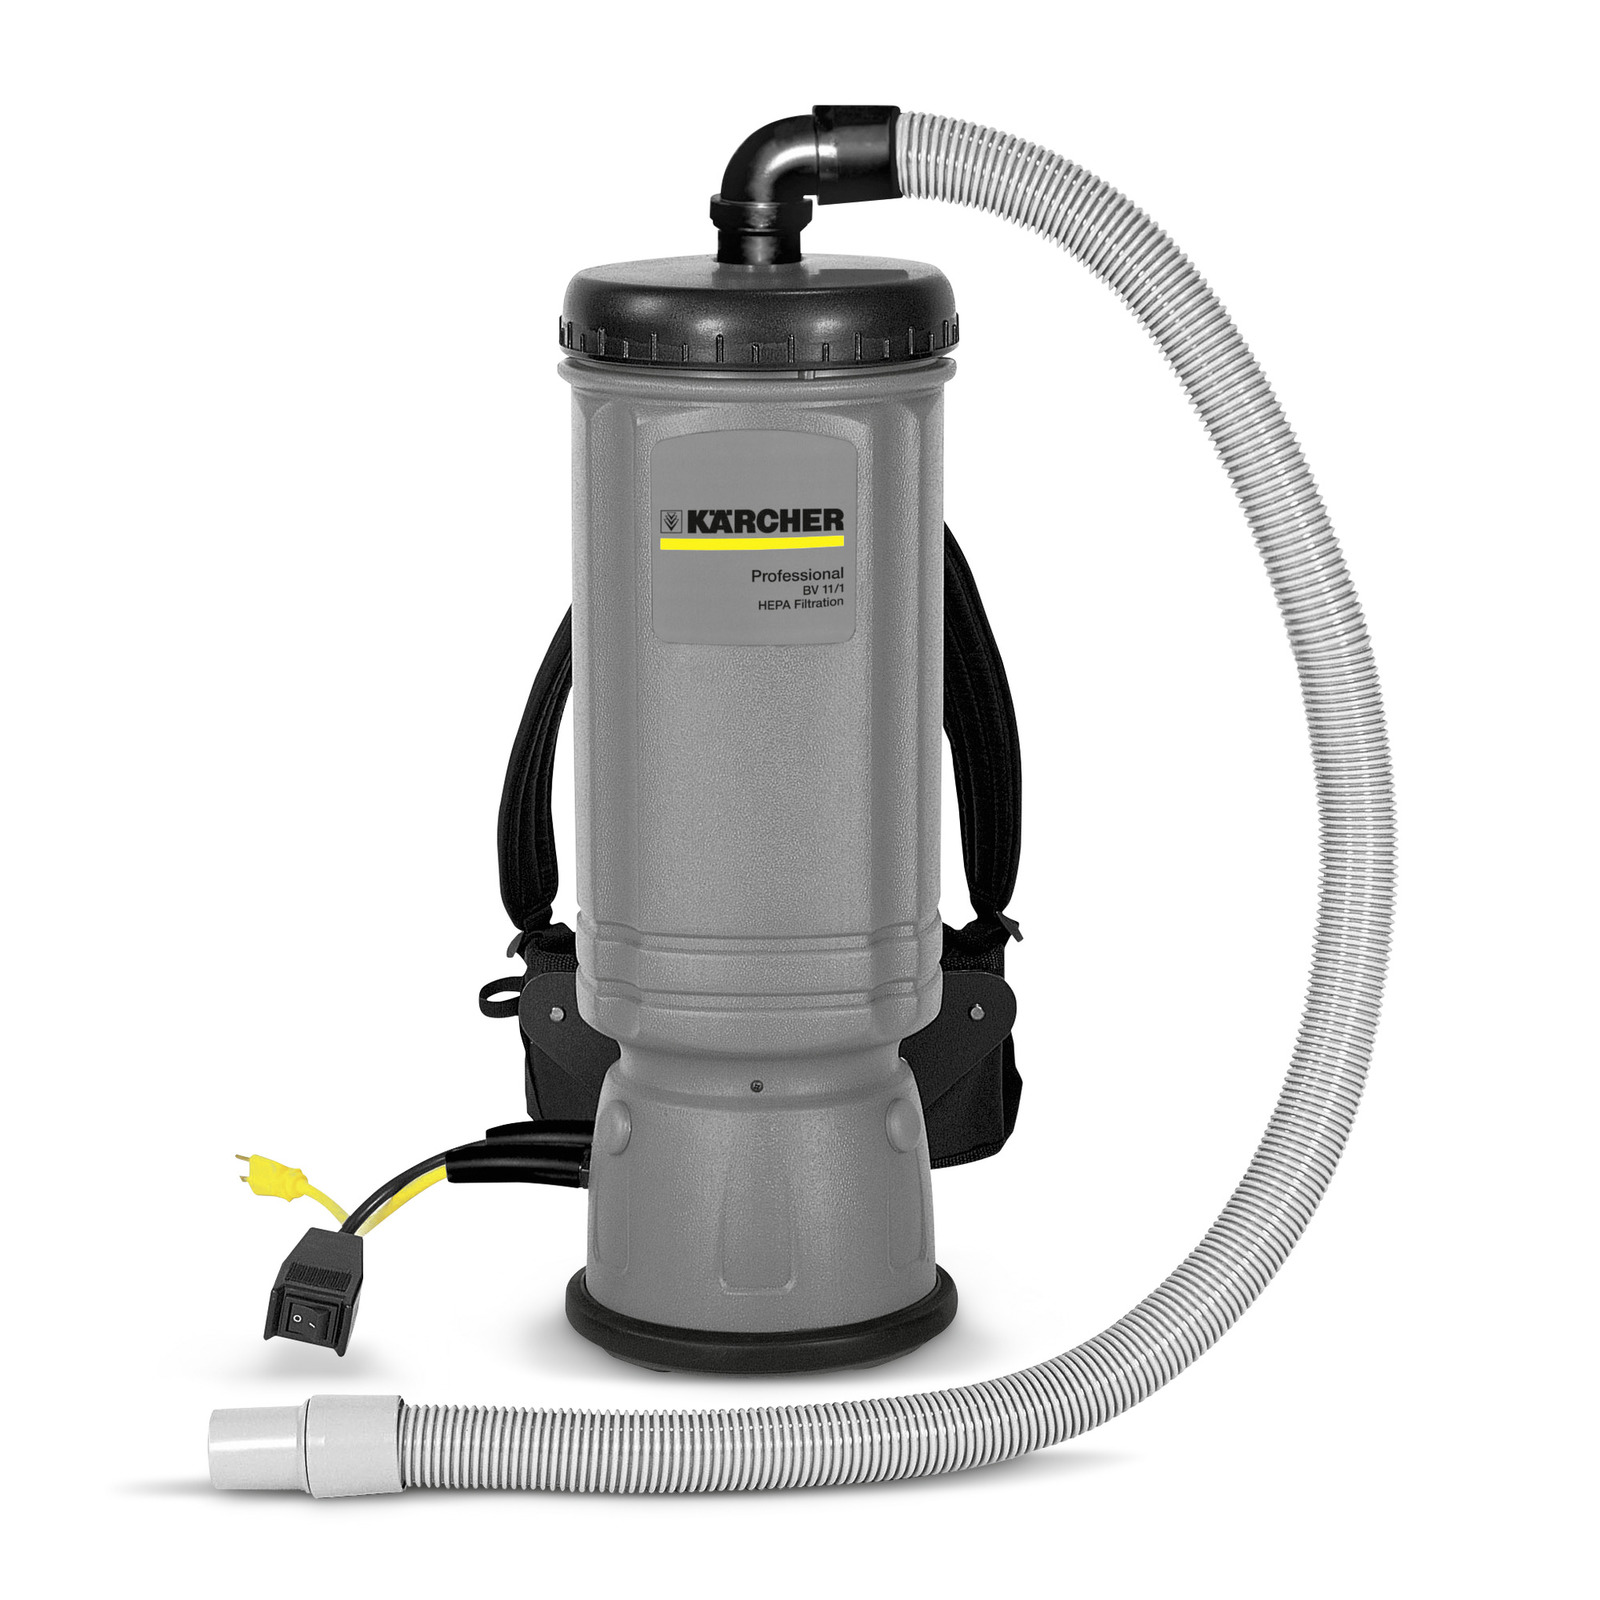 HEPA filter (Folter): description and reviews. HEPA filters for vacuum cleaners